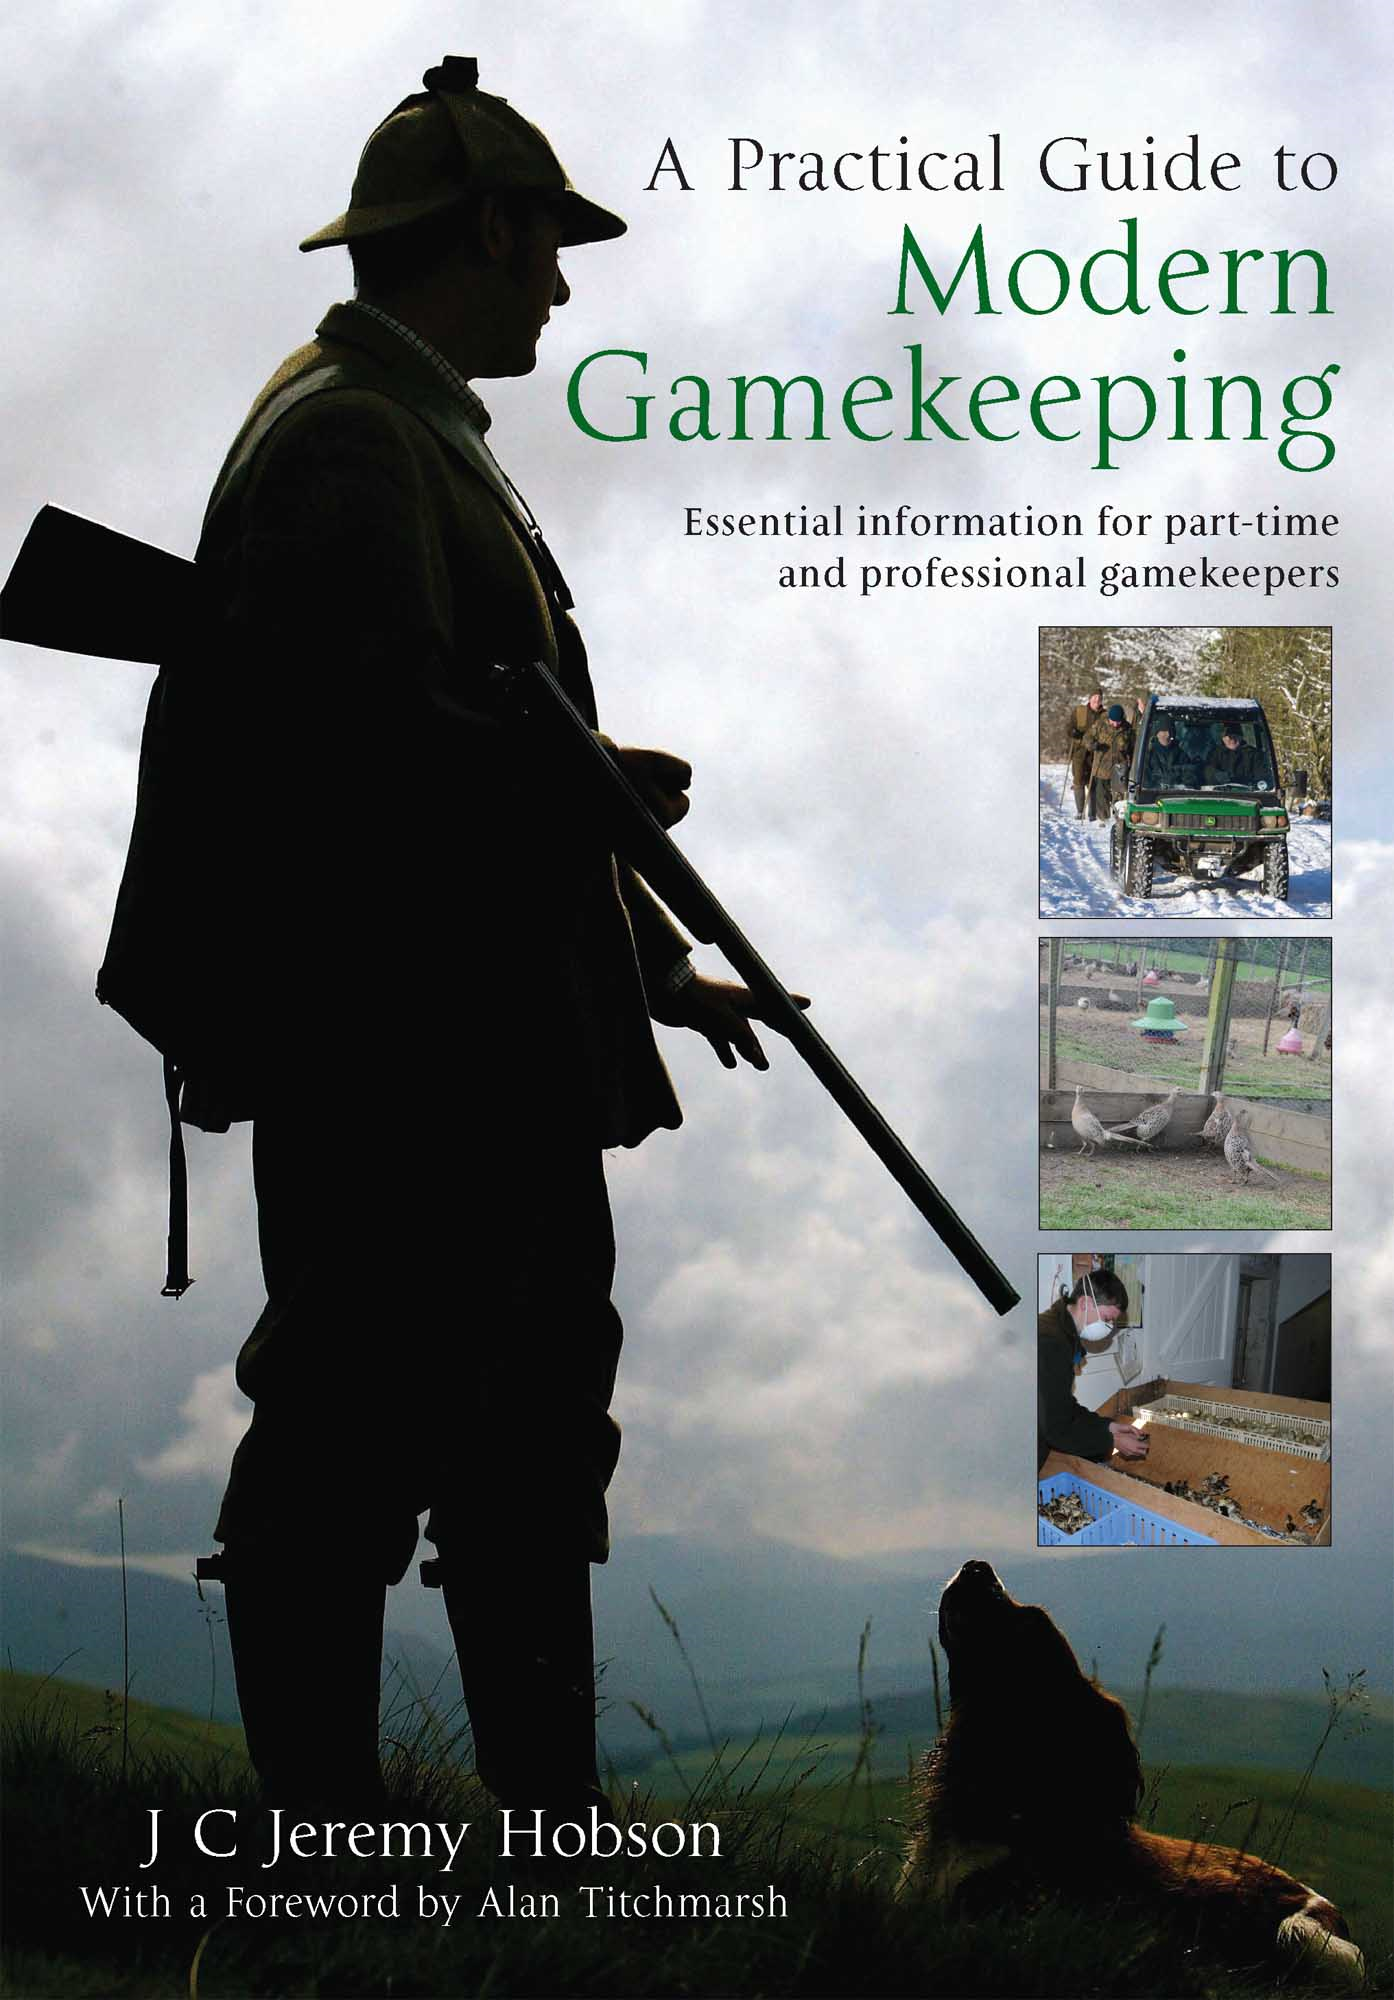 A Practical Guide to Modern Gamekeeping By: Hobson, J.C. Jeremy,J.C. Jeremy Hobson